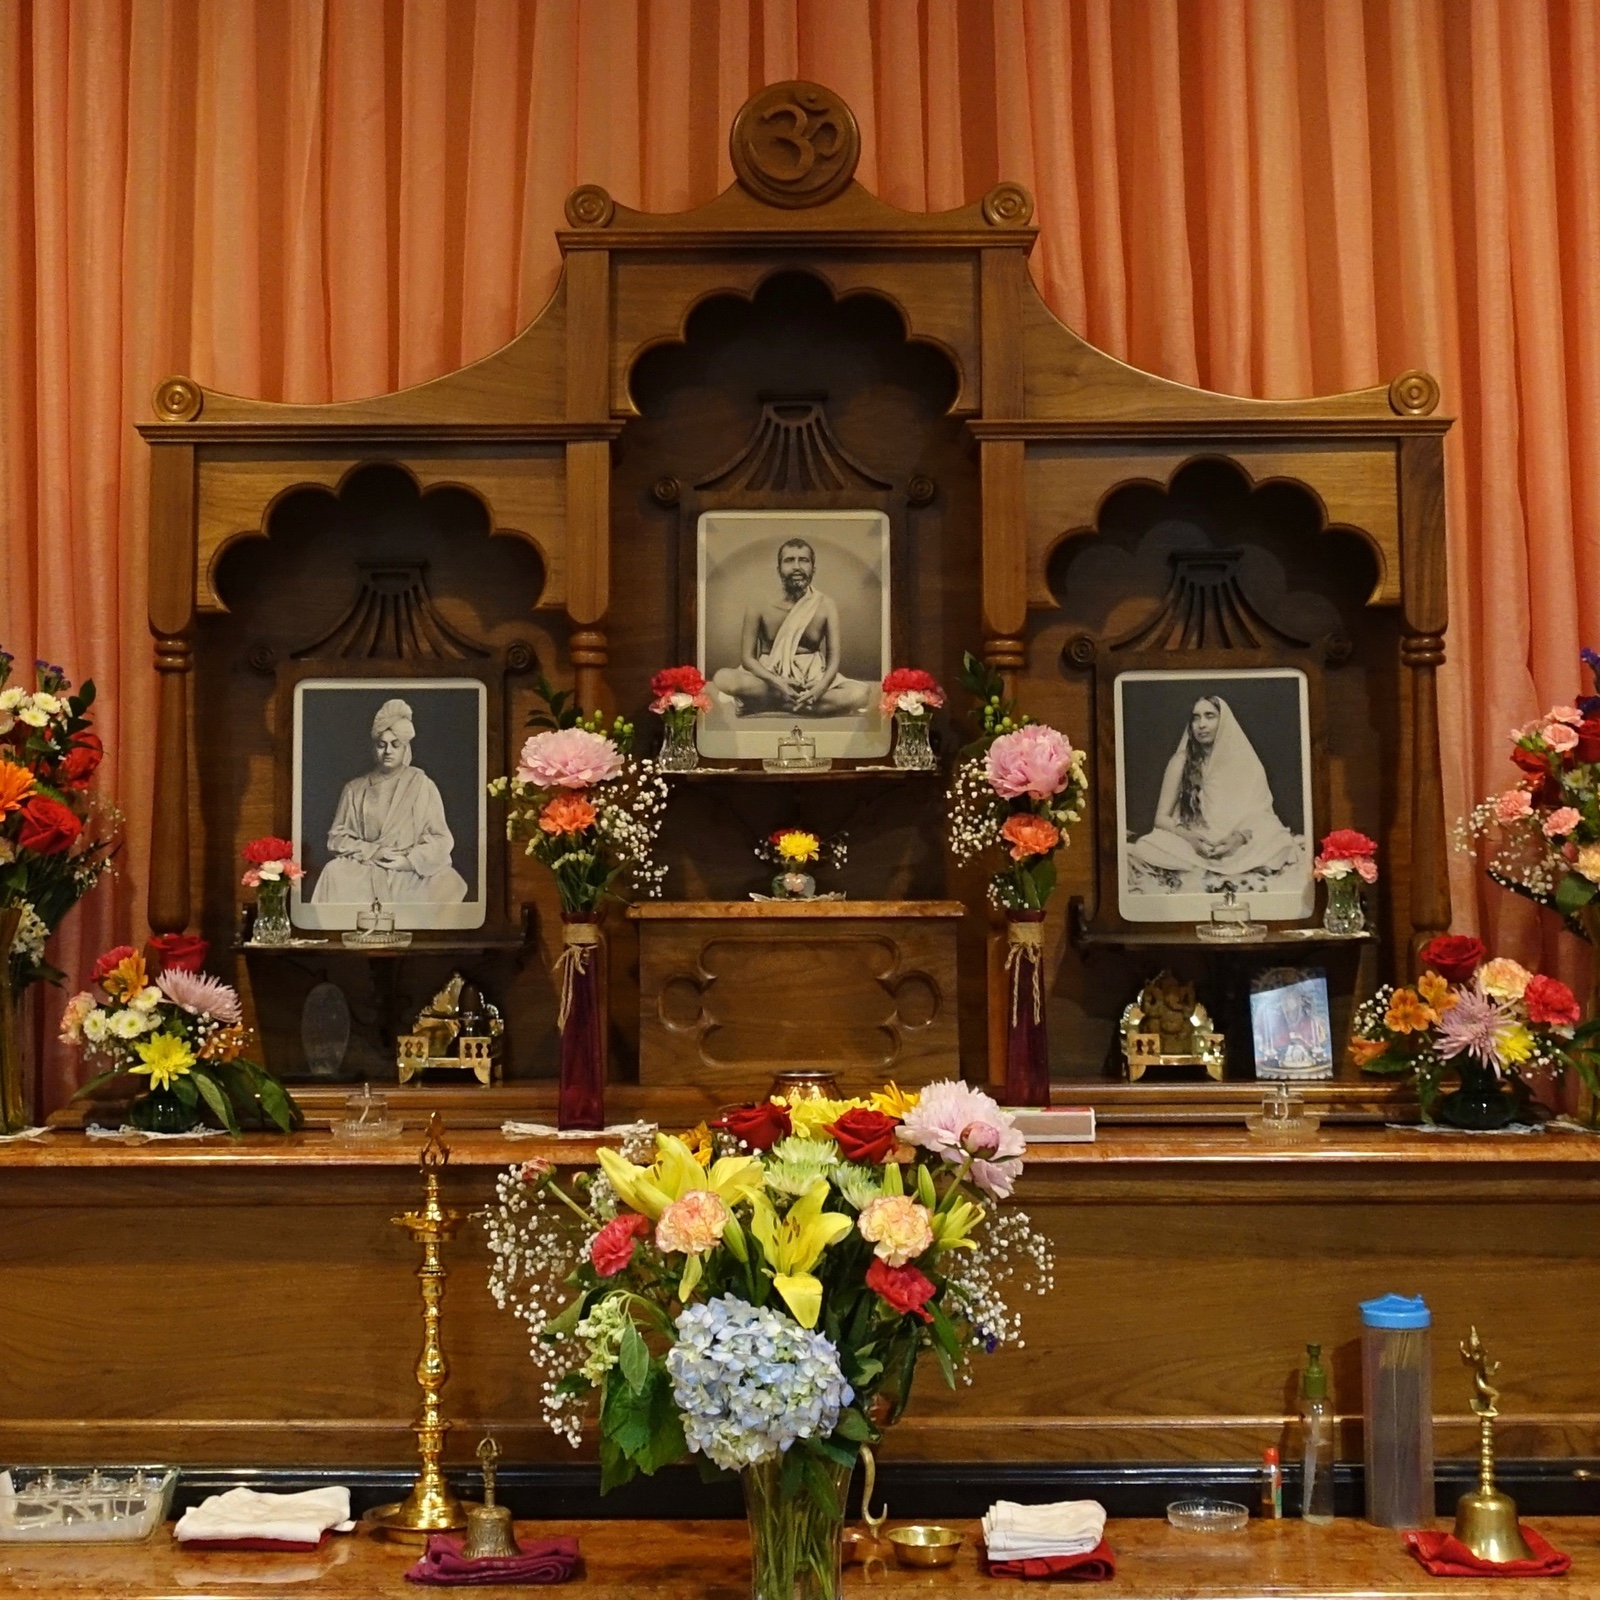 MEDITATION HOUR - Tue / Sat Evening 6:00 to 7:00Everyone is welcome to pray and meditate in the sacred quiet space of the meditation hall. To receive guidance in meditation, appointment must be made in advance with Swami Tyagananda.